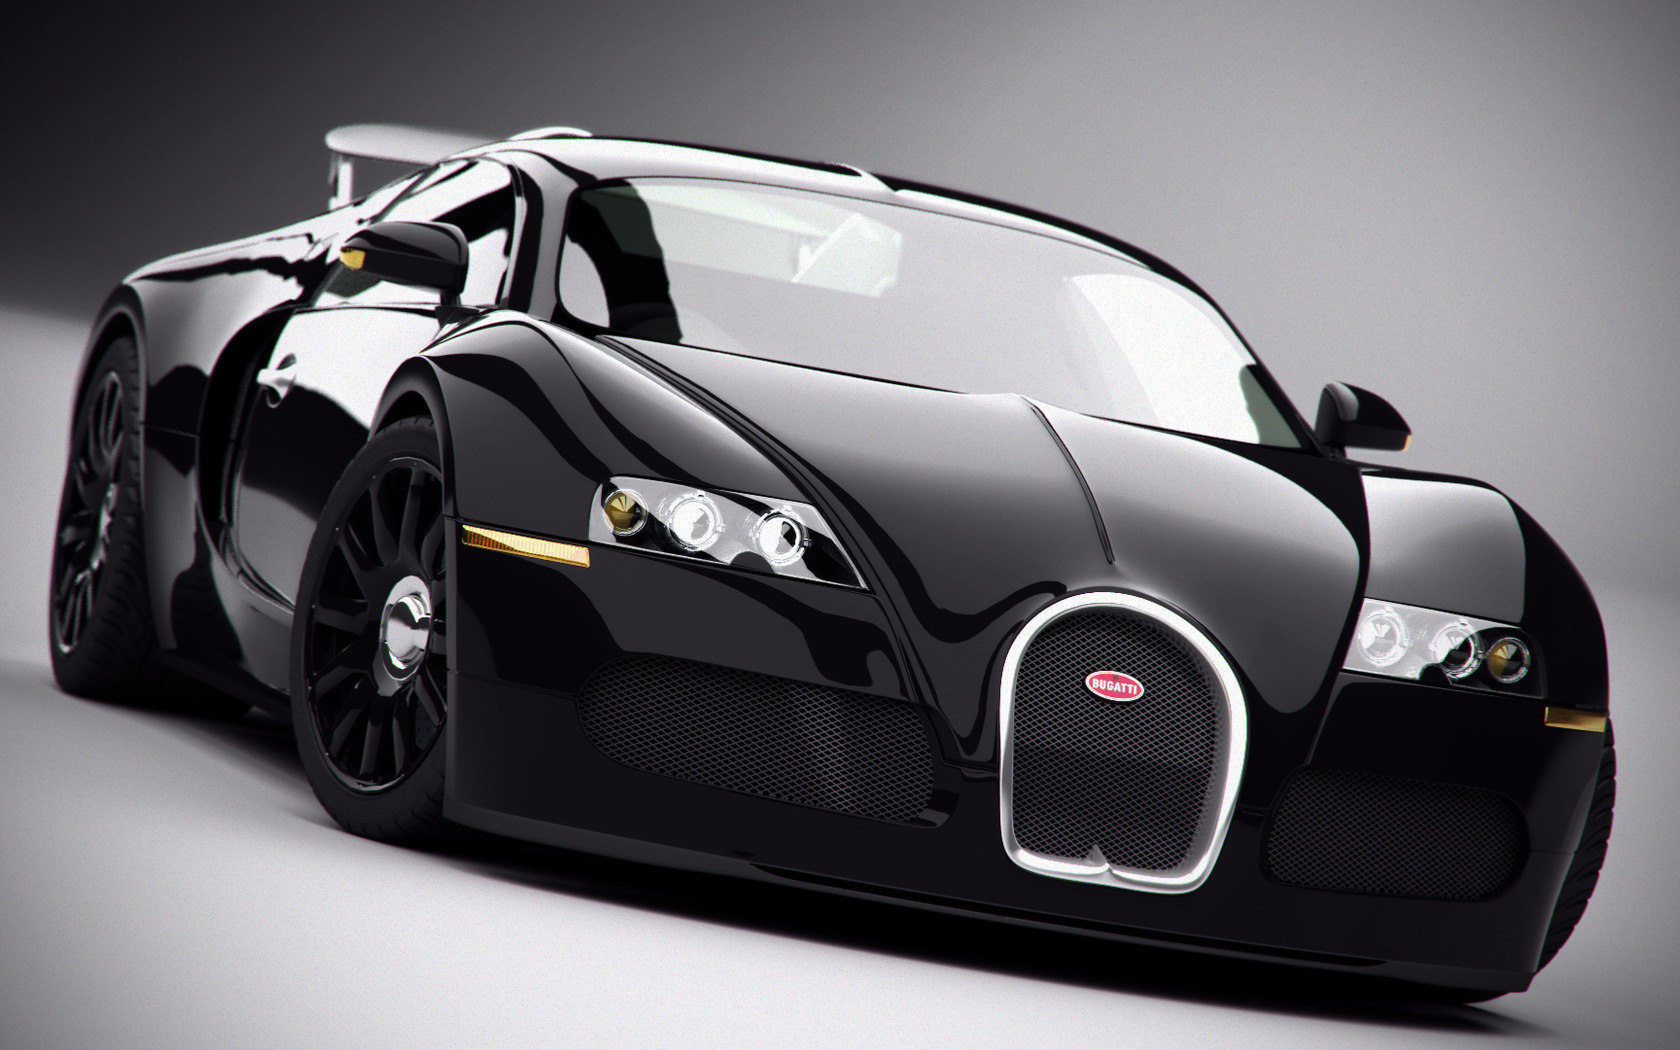 WWW HD Car Wallpaper Com